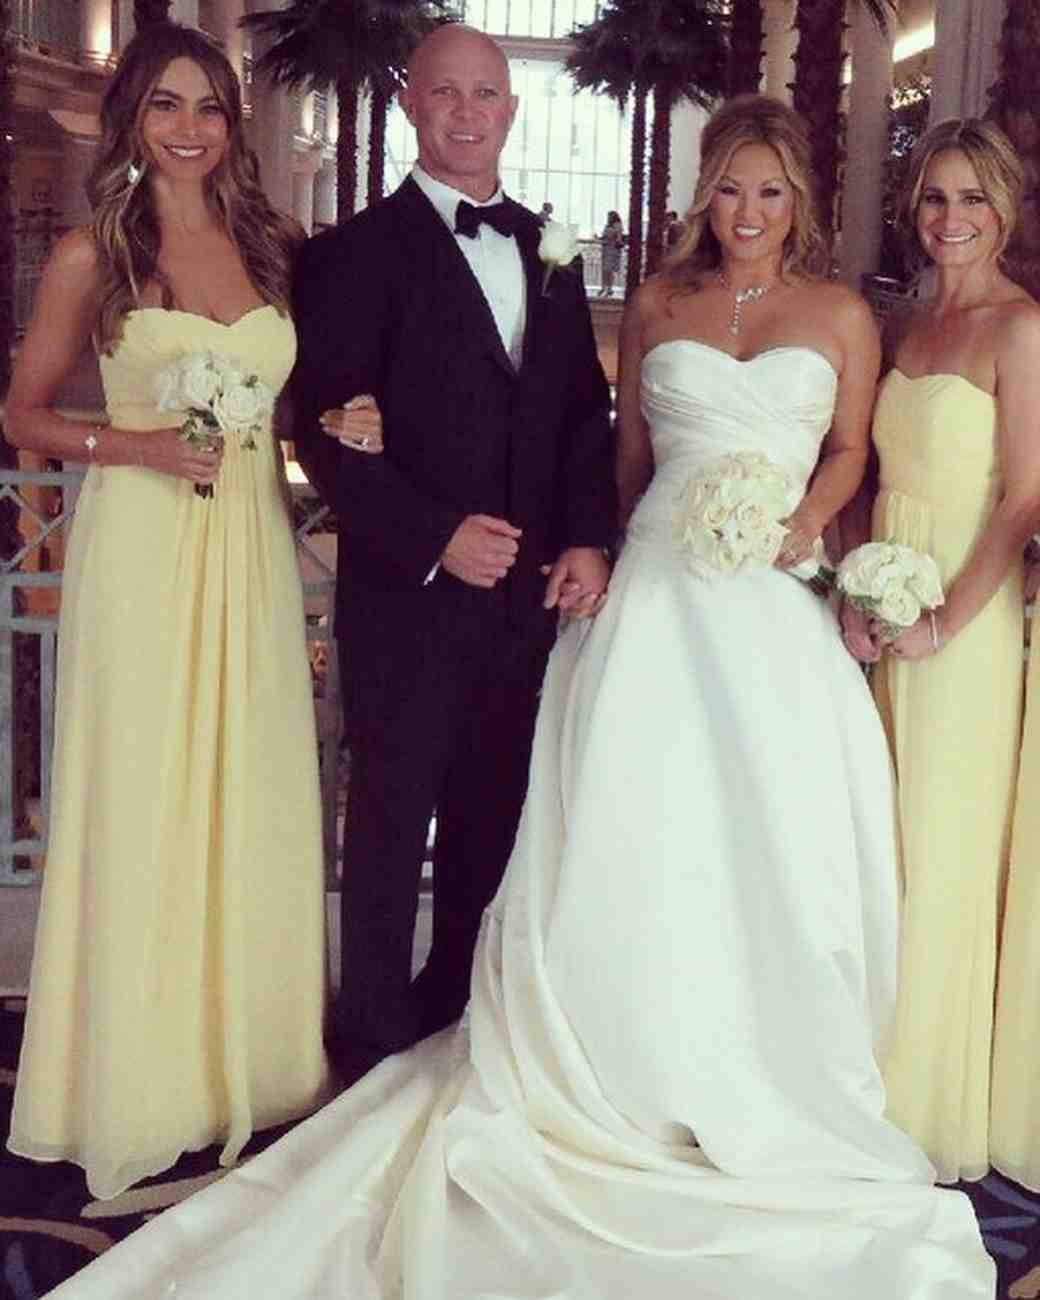 Sofia Vergara served as a bridesmaid at her friend's wedding